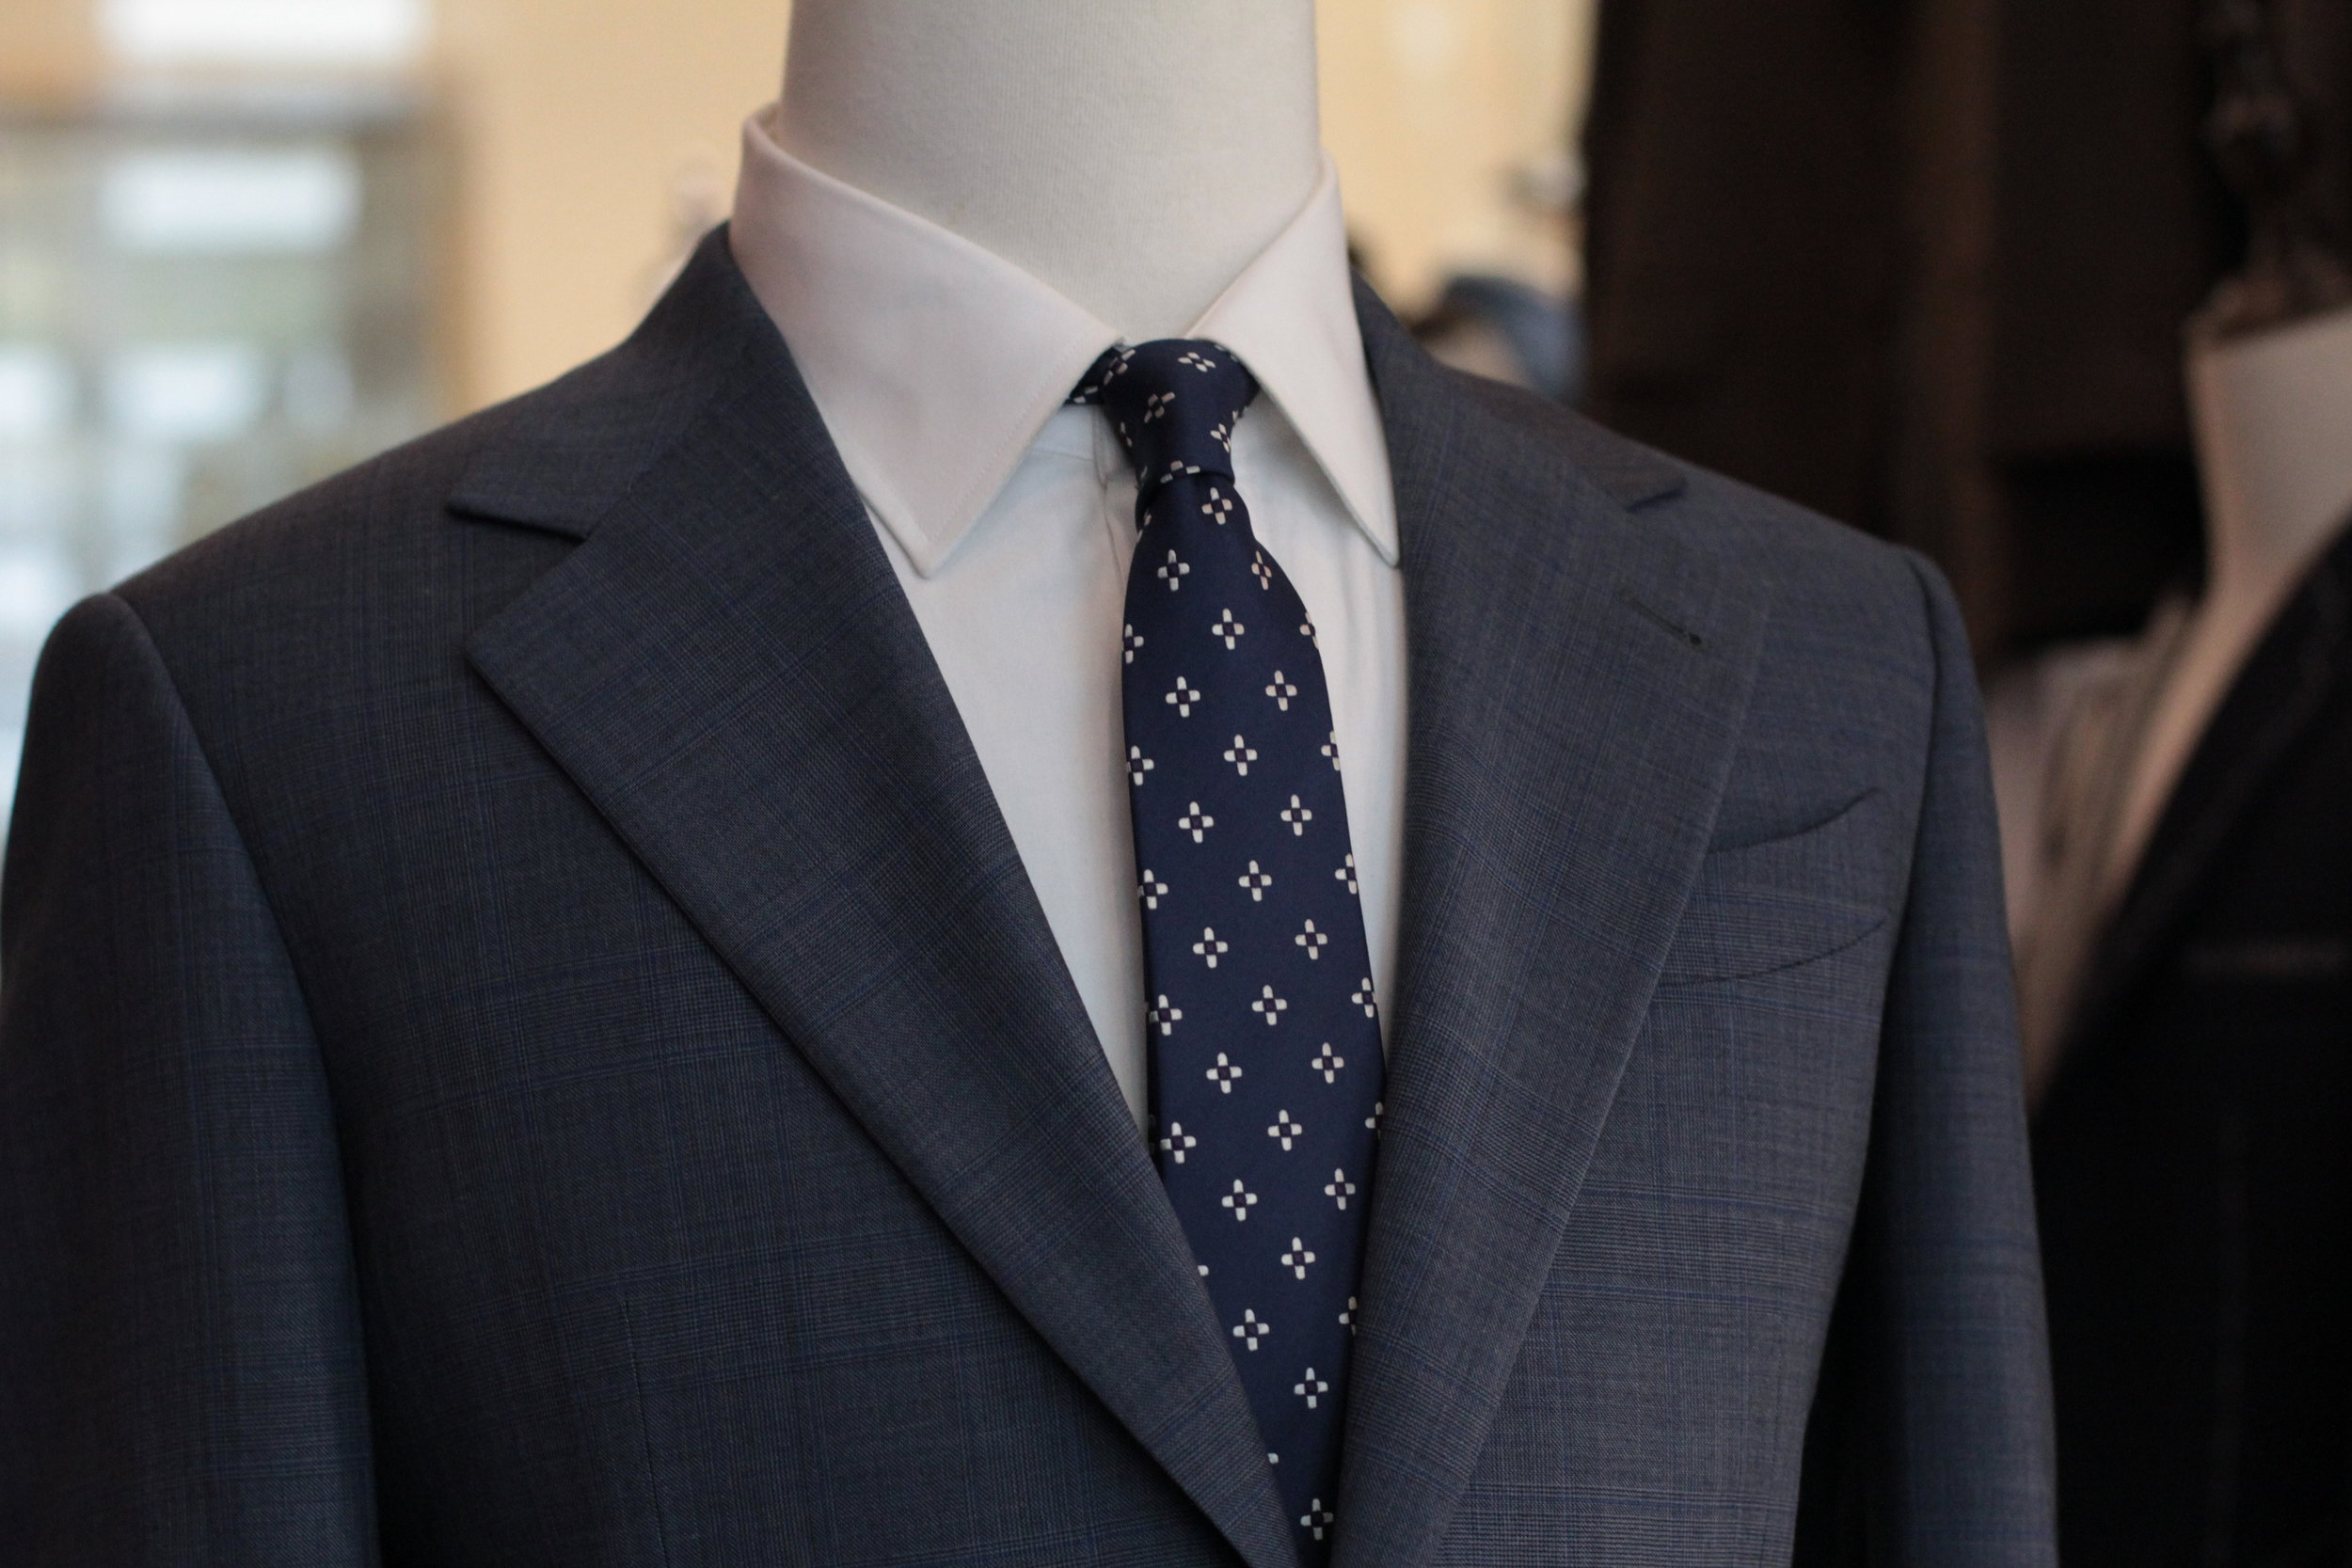 Made Suits Gangsta Notched Lapel Suit Herringbone Navy Blue Made to Measure Suit peak lapel.JPG